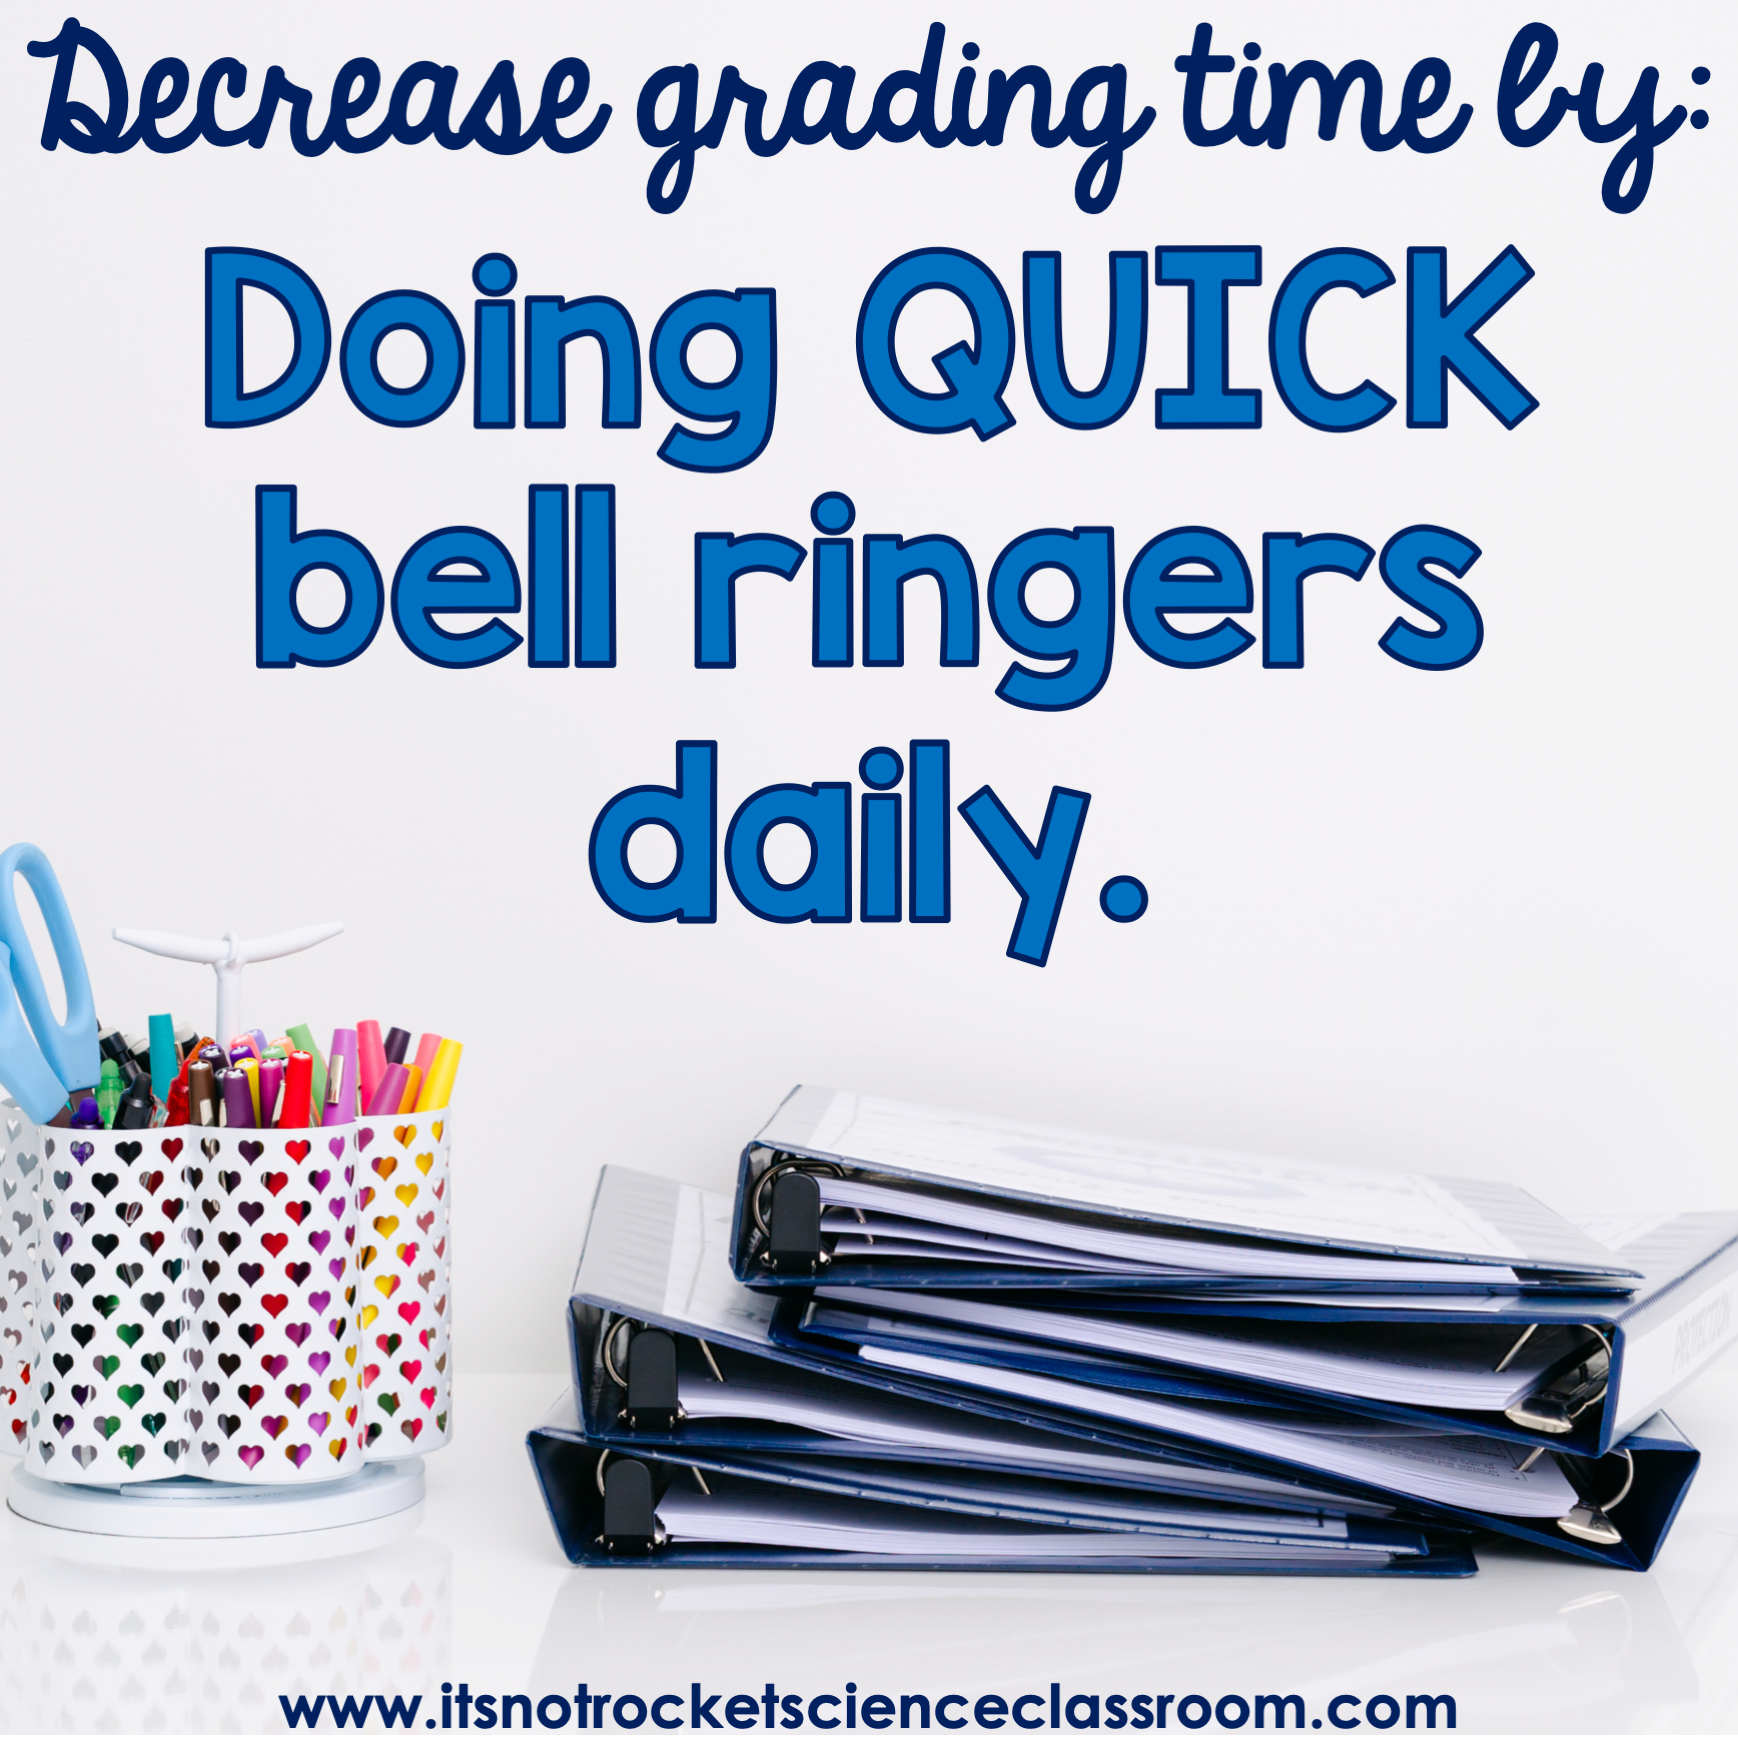 Tip #2 to decrease grading time: doing quick bell ringers daily.